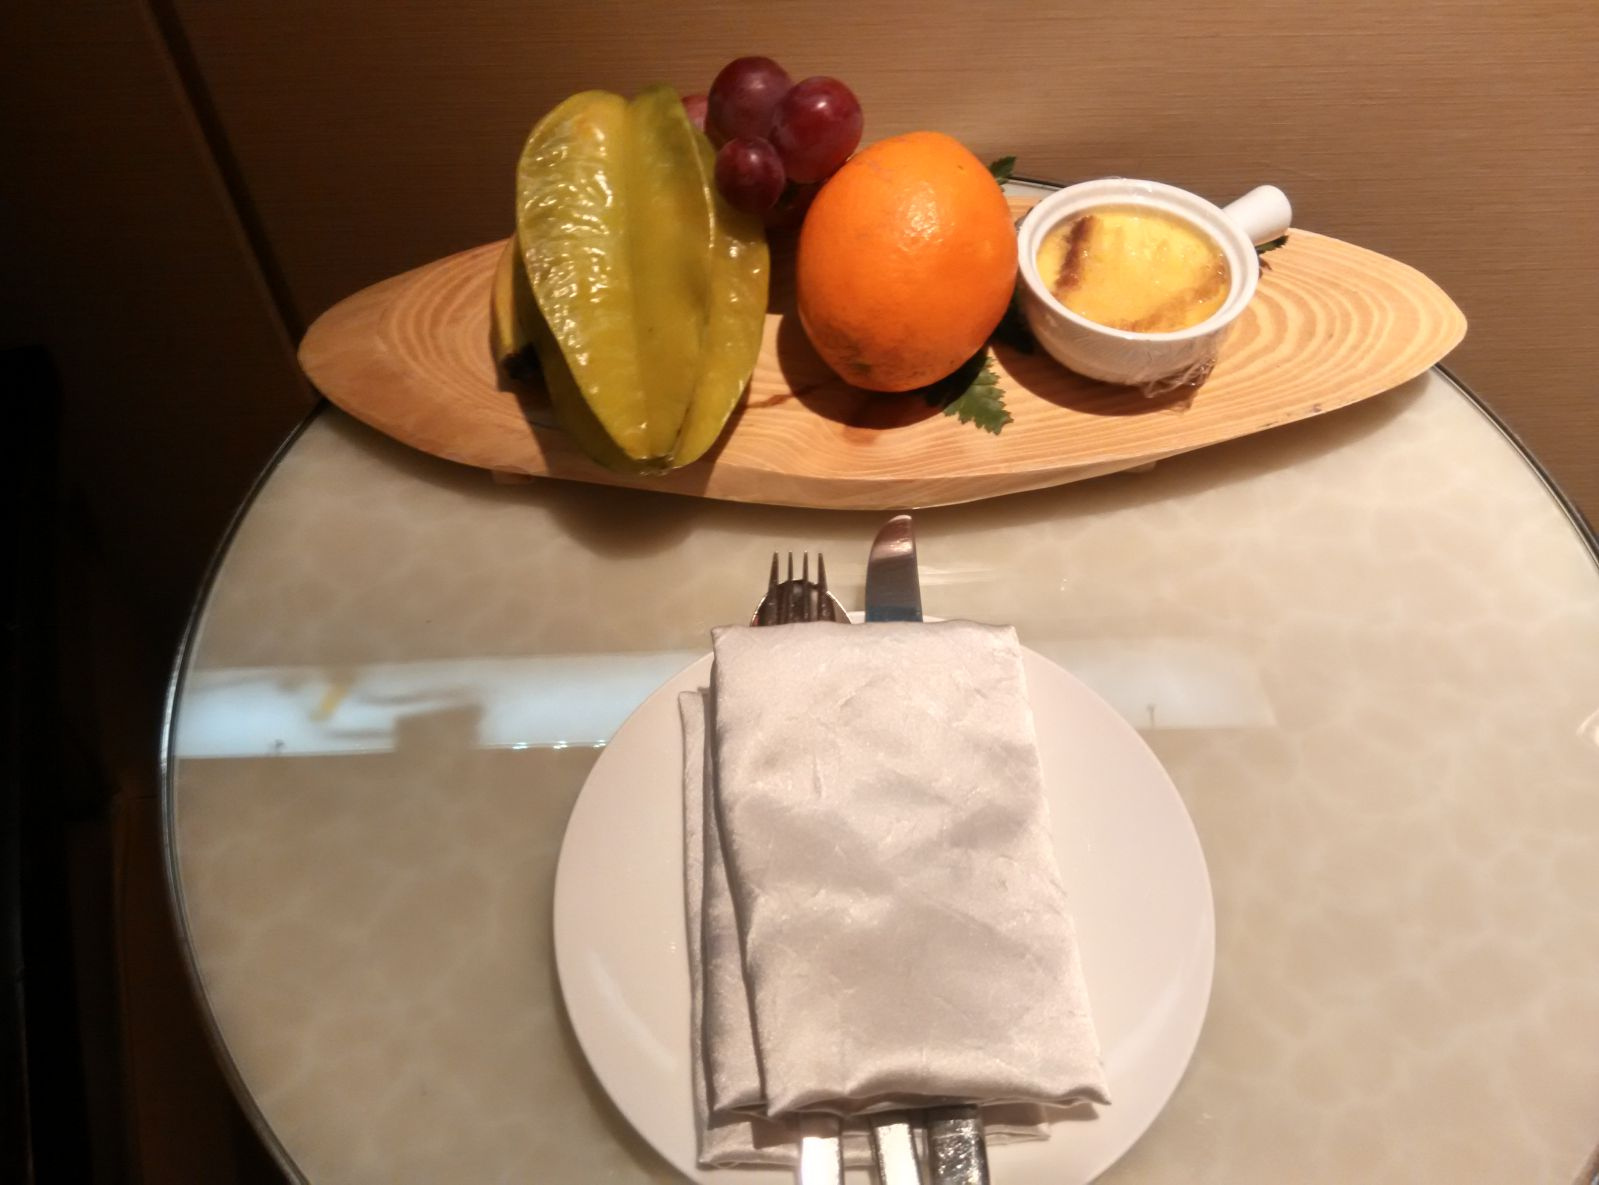 guangzhou-marriott-tianhe-welcome-fruit